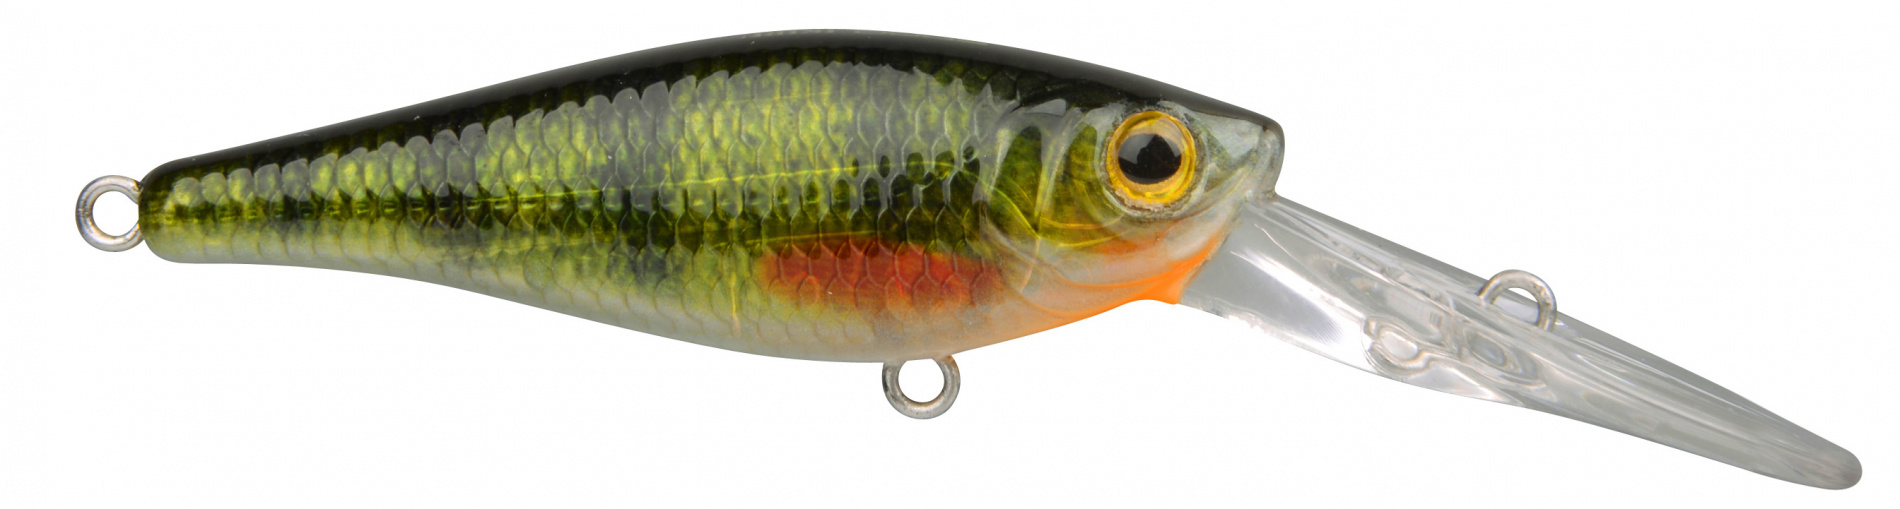 Воблер SPRO IKIRU SHAD60 LL GREEN PERCHВоблеры<br><br>